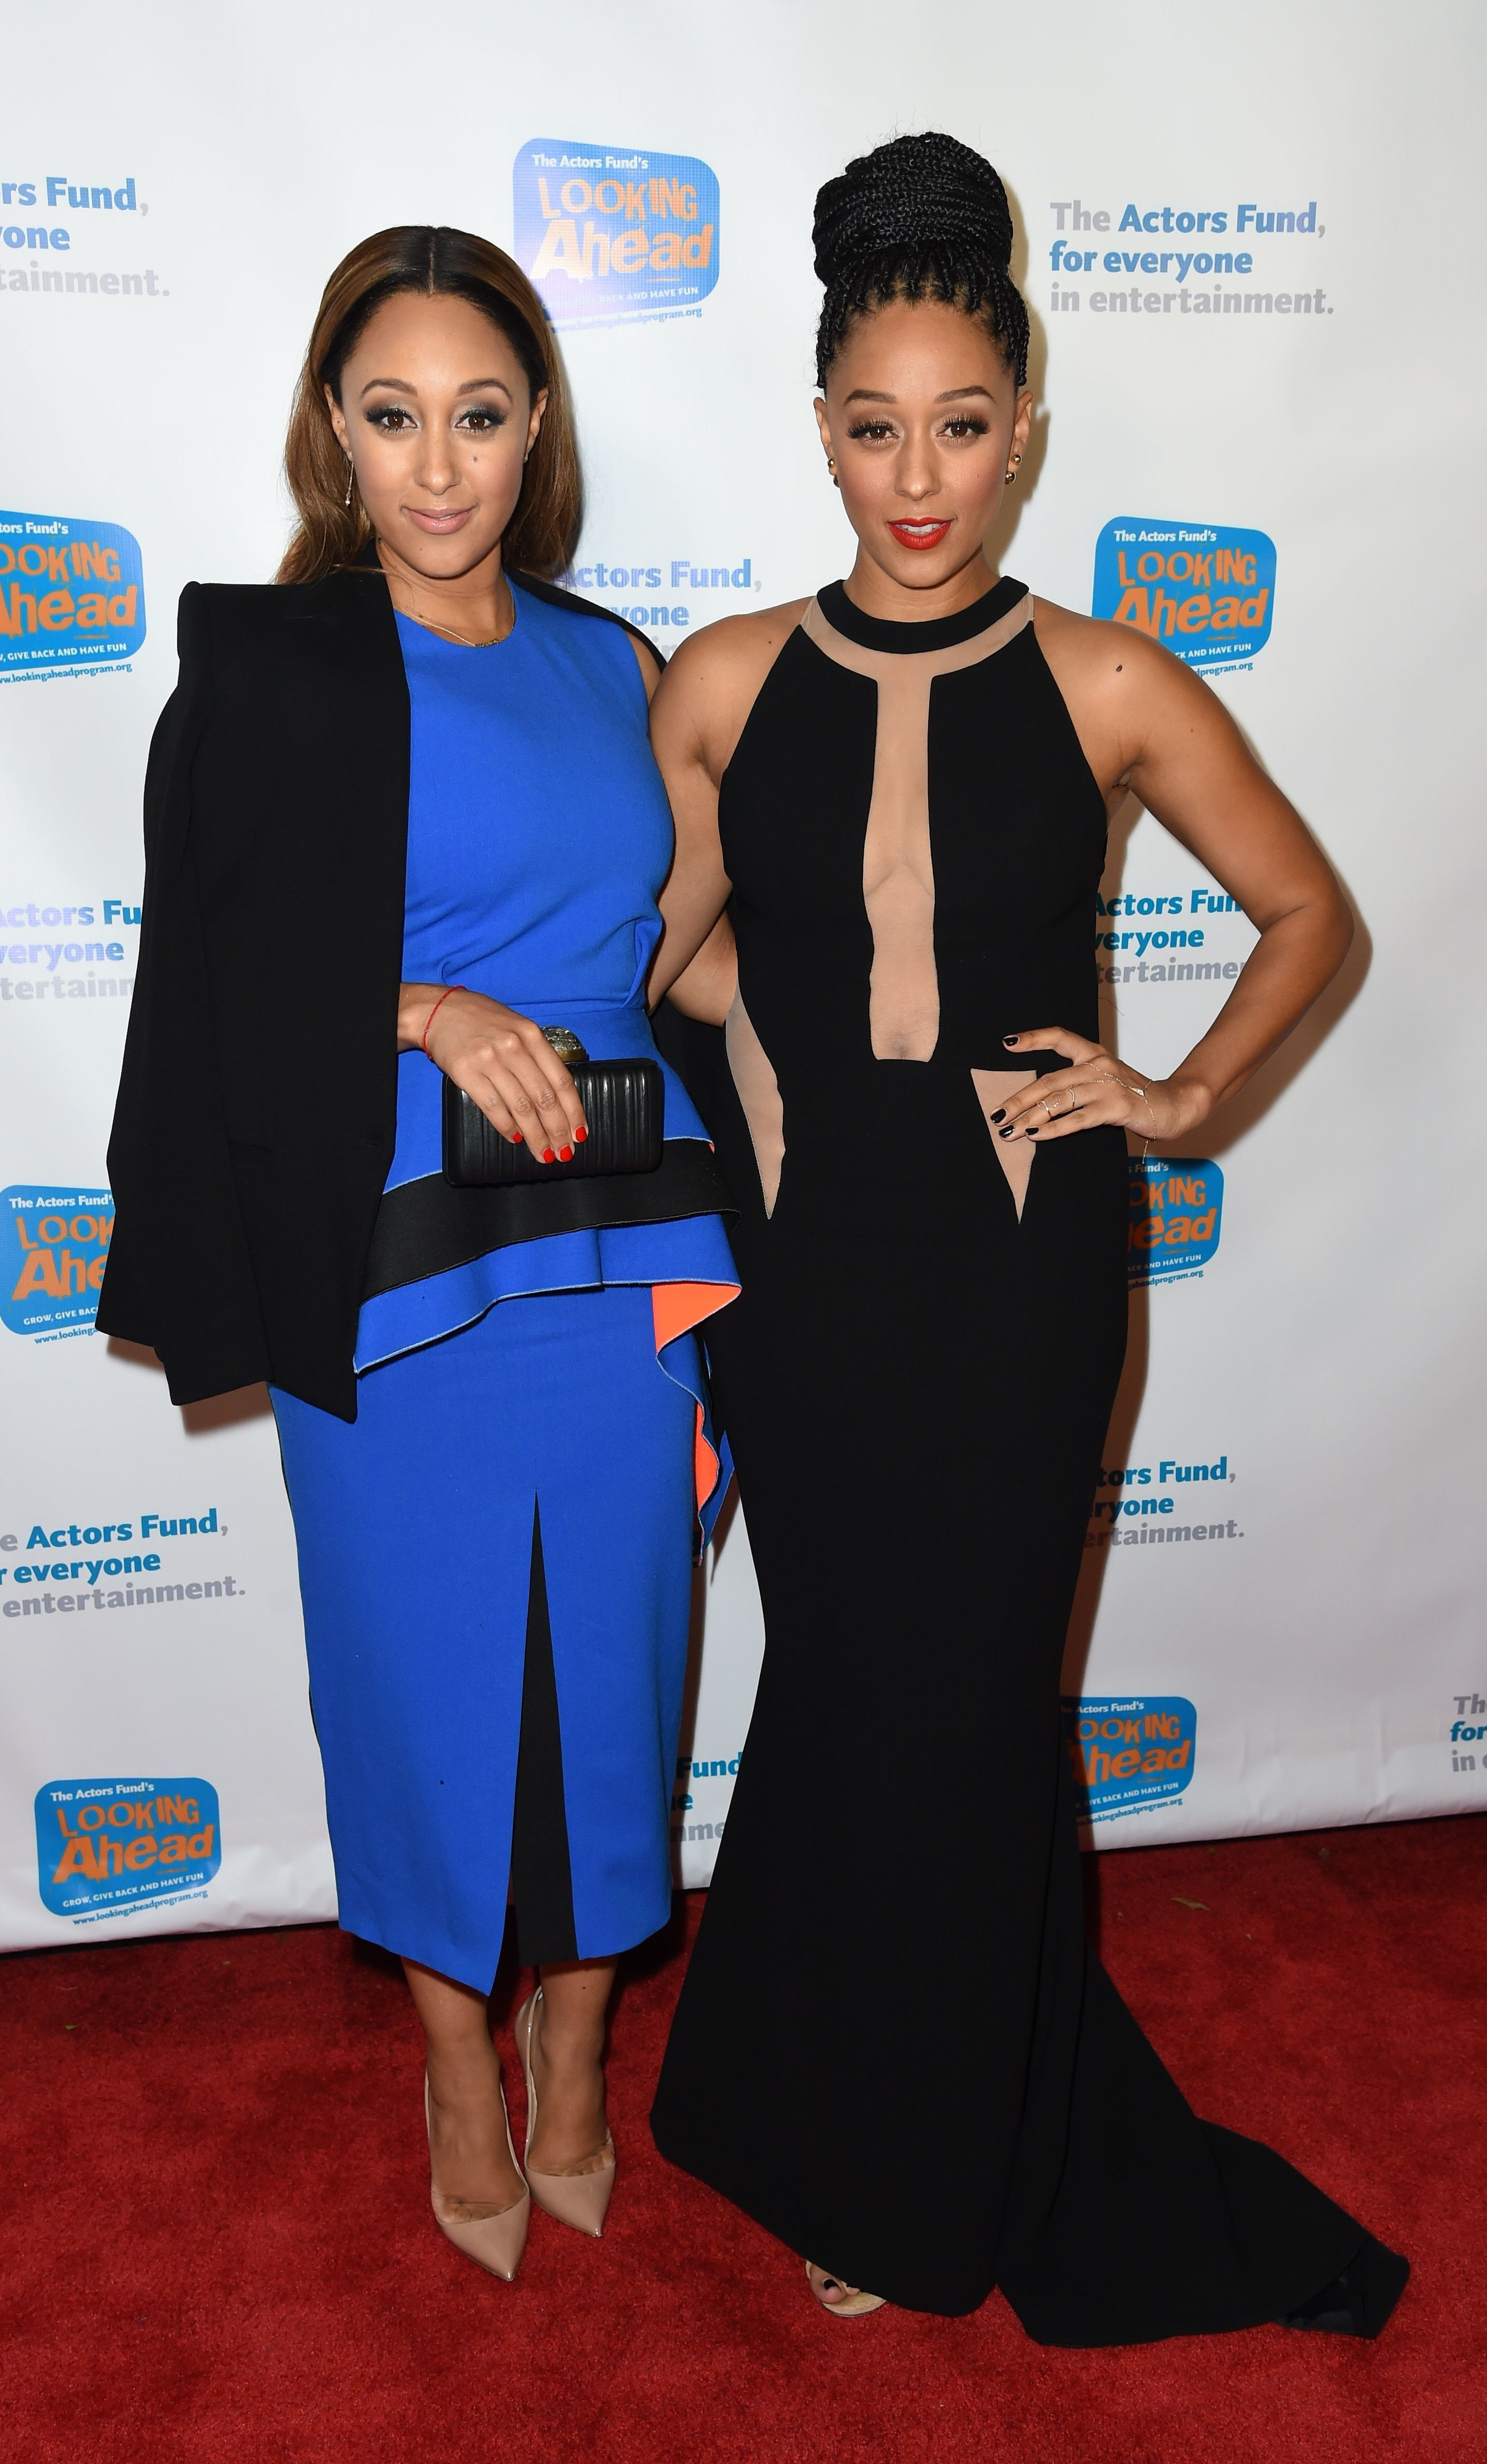 Tamera Mowry Housley and Tia Mowry Hardrict at The Actors Fund Looking Ahead Awards in Los Angeles on Dec. 4, 2016.